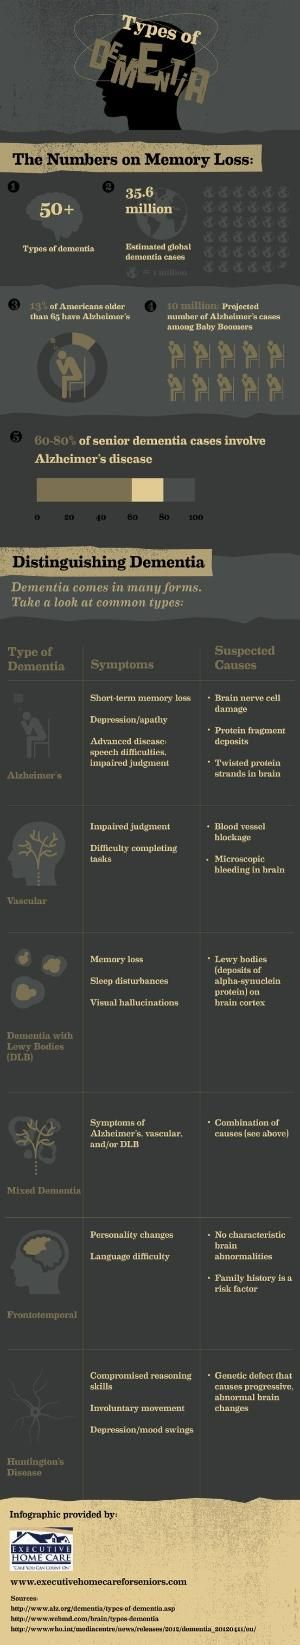 Alzheimer's is a form of dementia that results in short-term memory loss, depression, and even impaired speech. Learn more about Alzheimer's and other forms of dementia in this infographic from an in-home elder care company by carlasisters